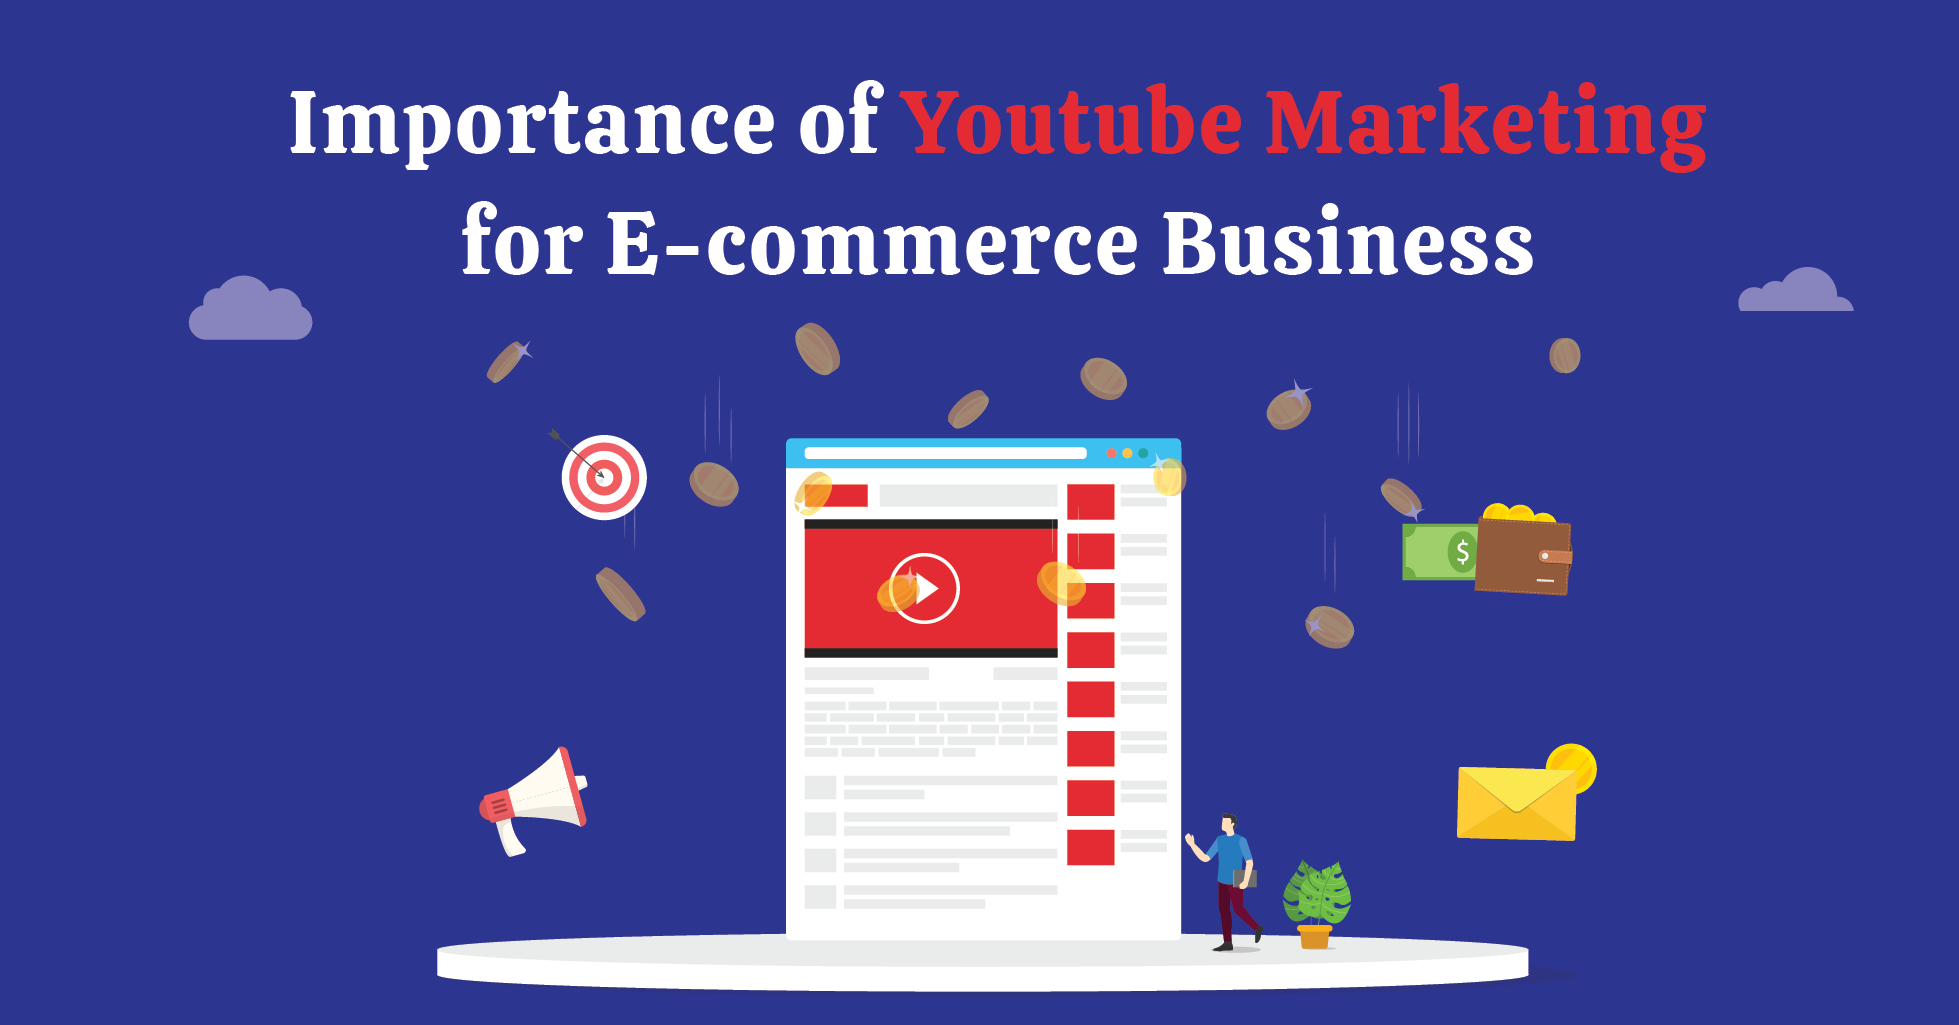 11 Unique Ways To Use YouTube In E-commerce Marketing